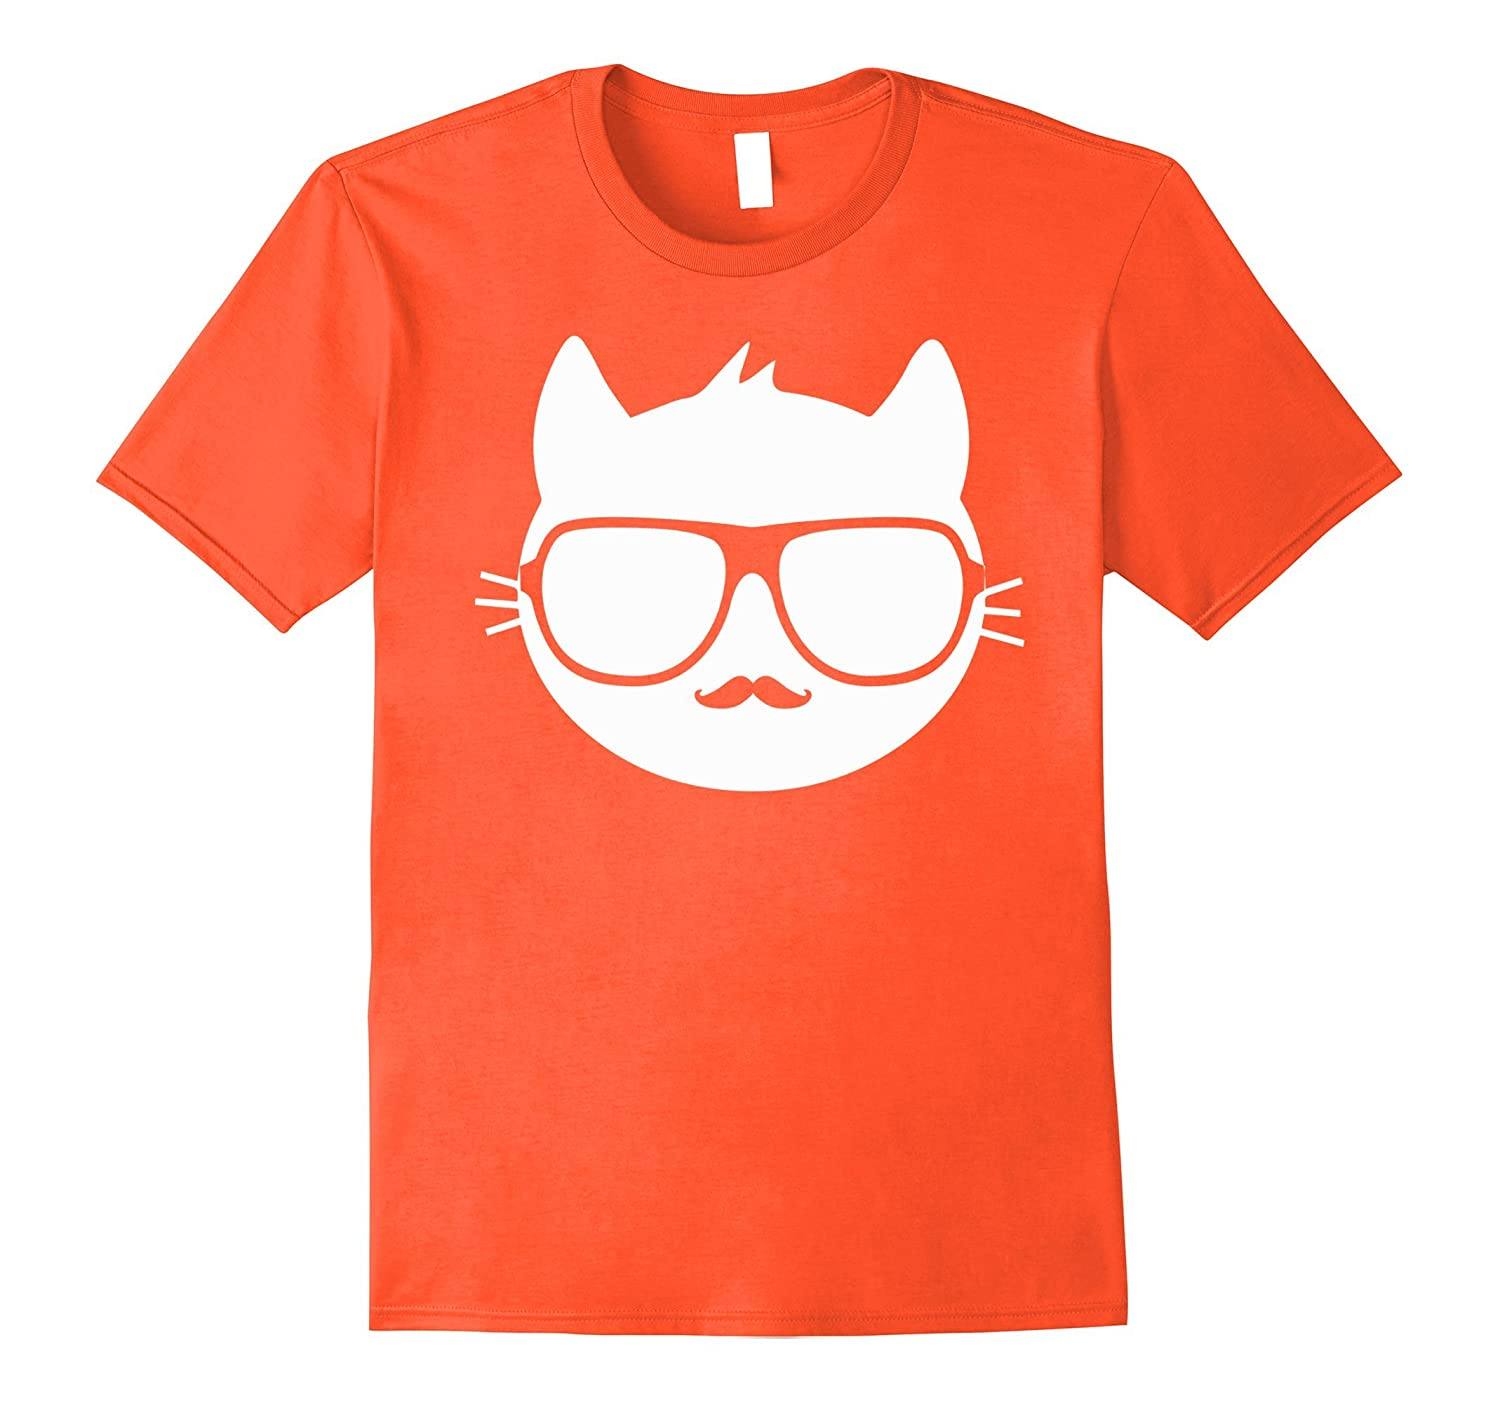 6a6d3b59c2 ... Crazy Cool Mad Kitty Cat With Glasses And Mustache T-Shirt-Newstyleth  ...